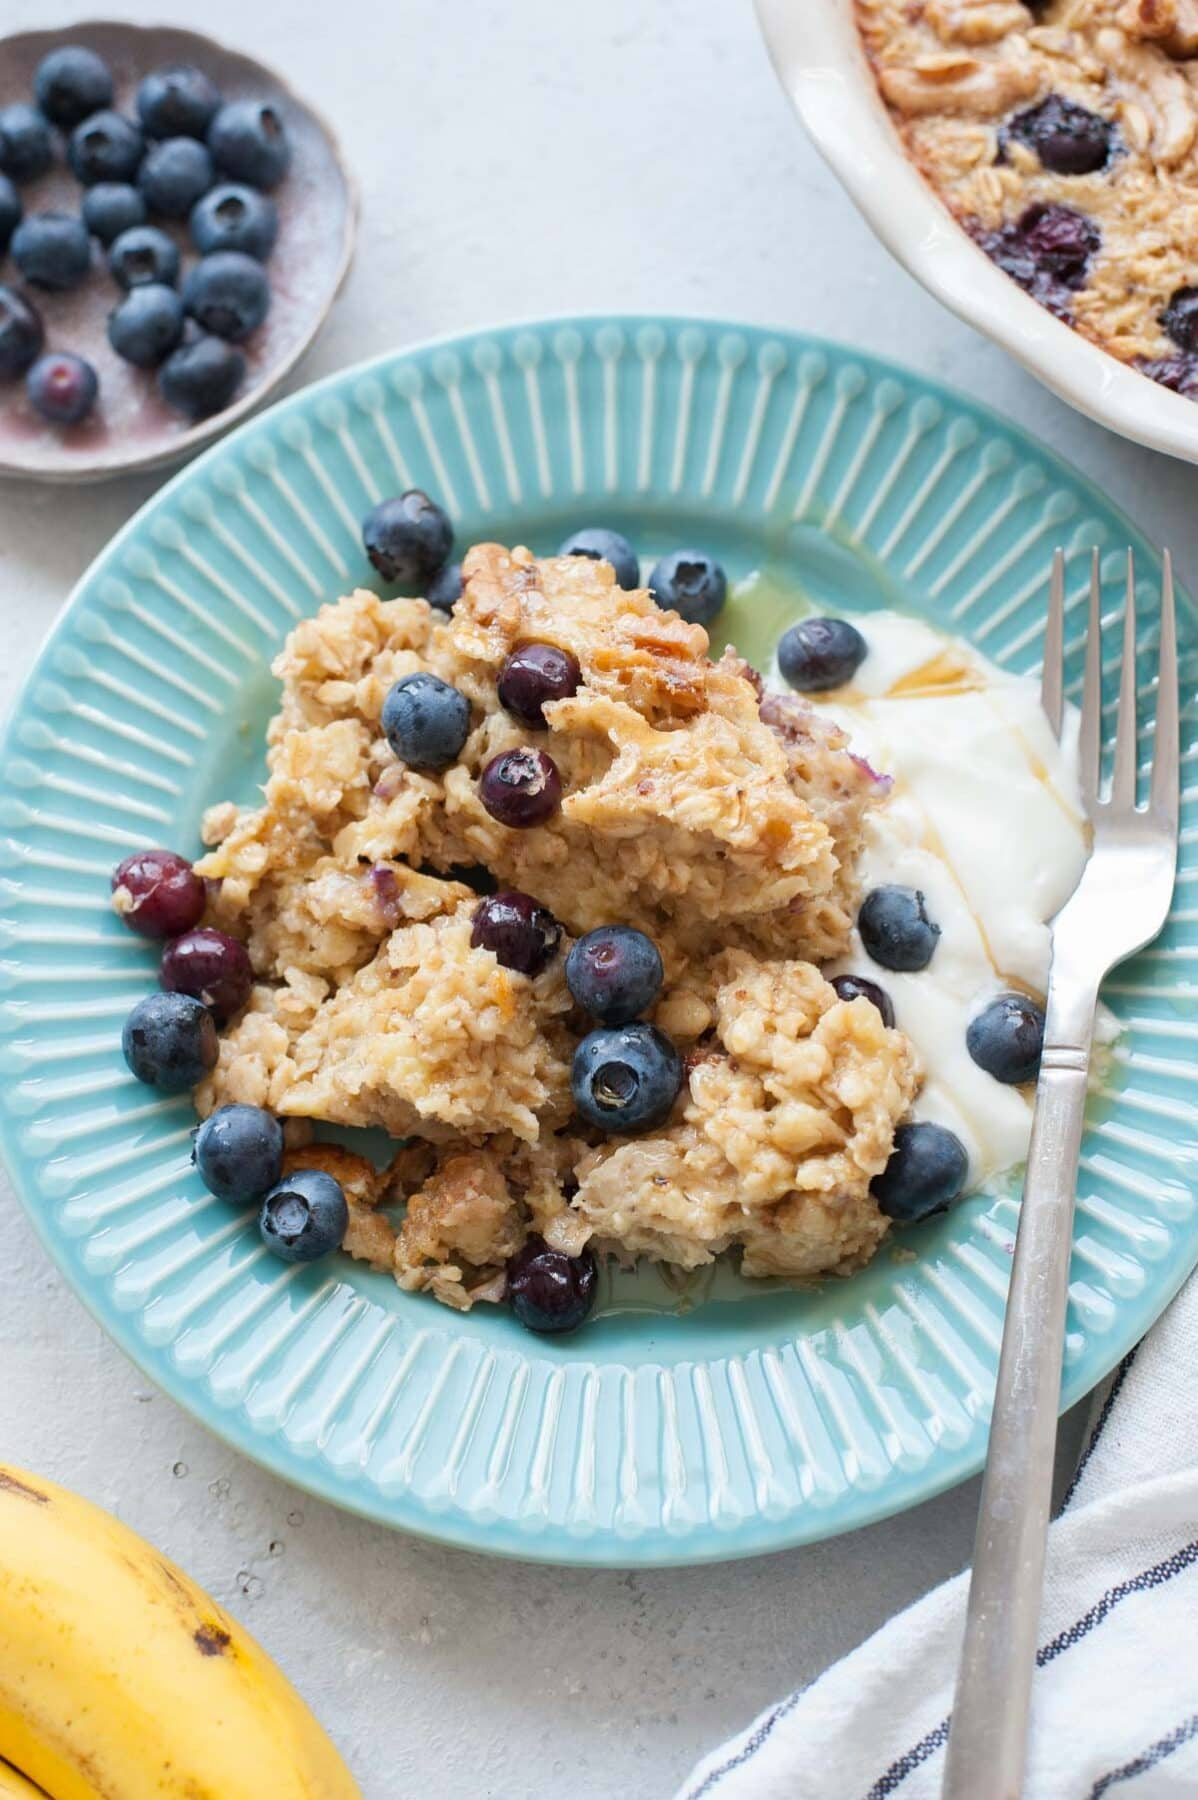 Baked oatmeal with blueberries and banana on a light blue plate, served with yogurt and maple syrup.